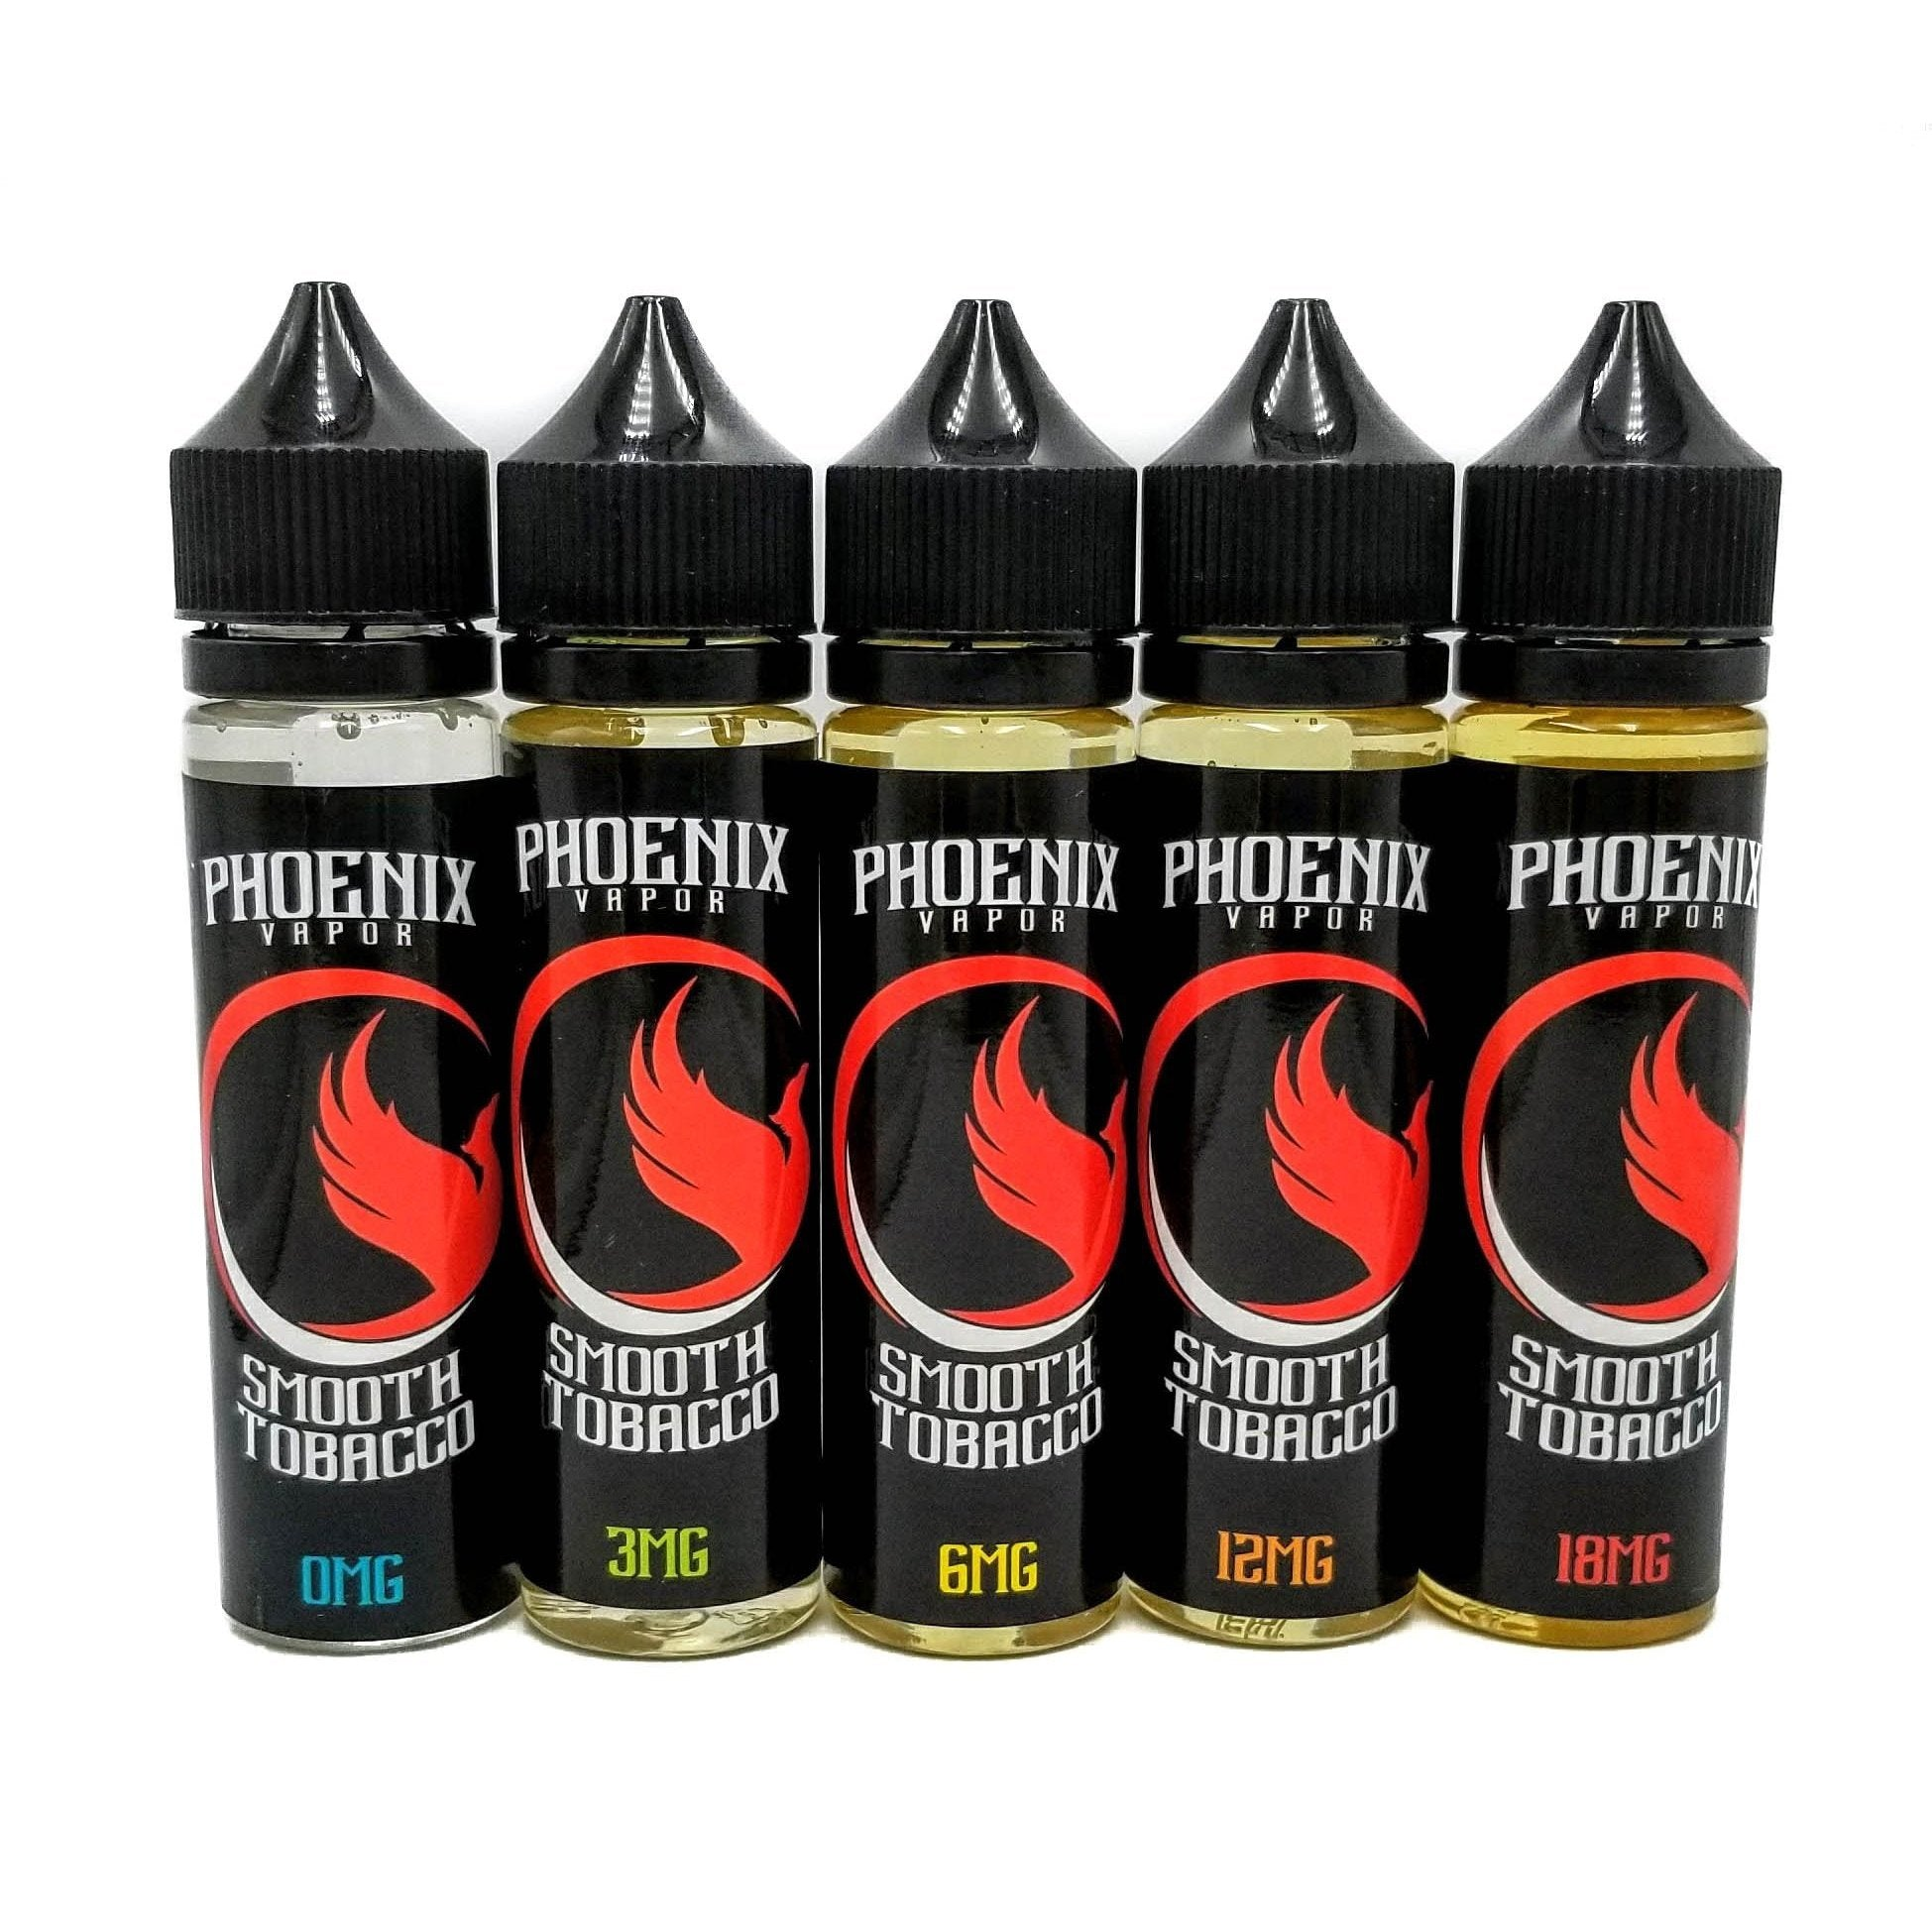 Phoenix Vapor E-Liquid E-Liquid 60 ml / 0 mg Smooth Tobacco by Phoenix Vapor